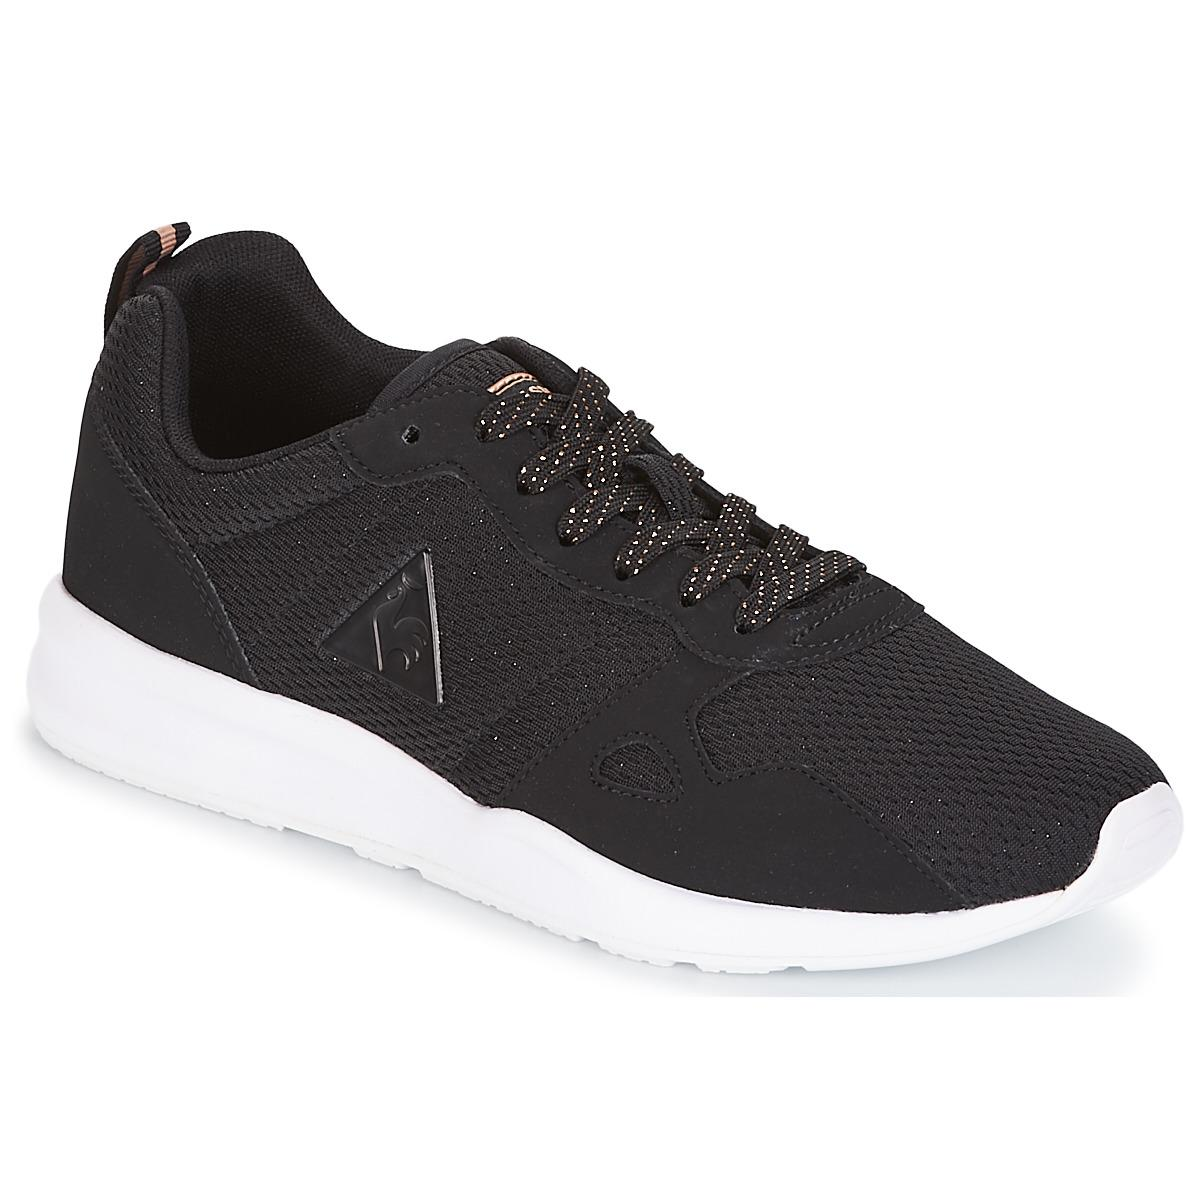 new concept 19d86 a79fd le-coq-sportif-black-Lcs-R600-W-Metallic-Meshs-Nubuck-Womens-Shoes -trainers-In-Black.jpeg